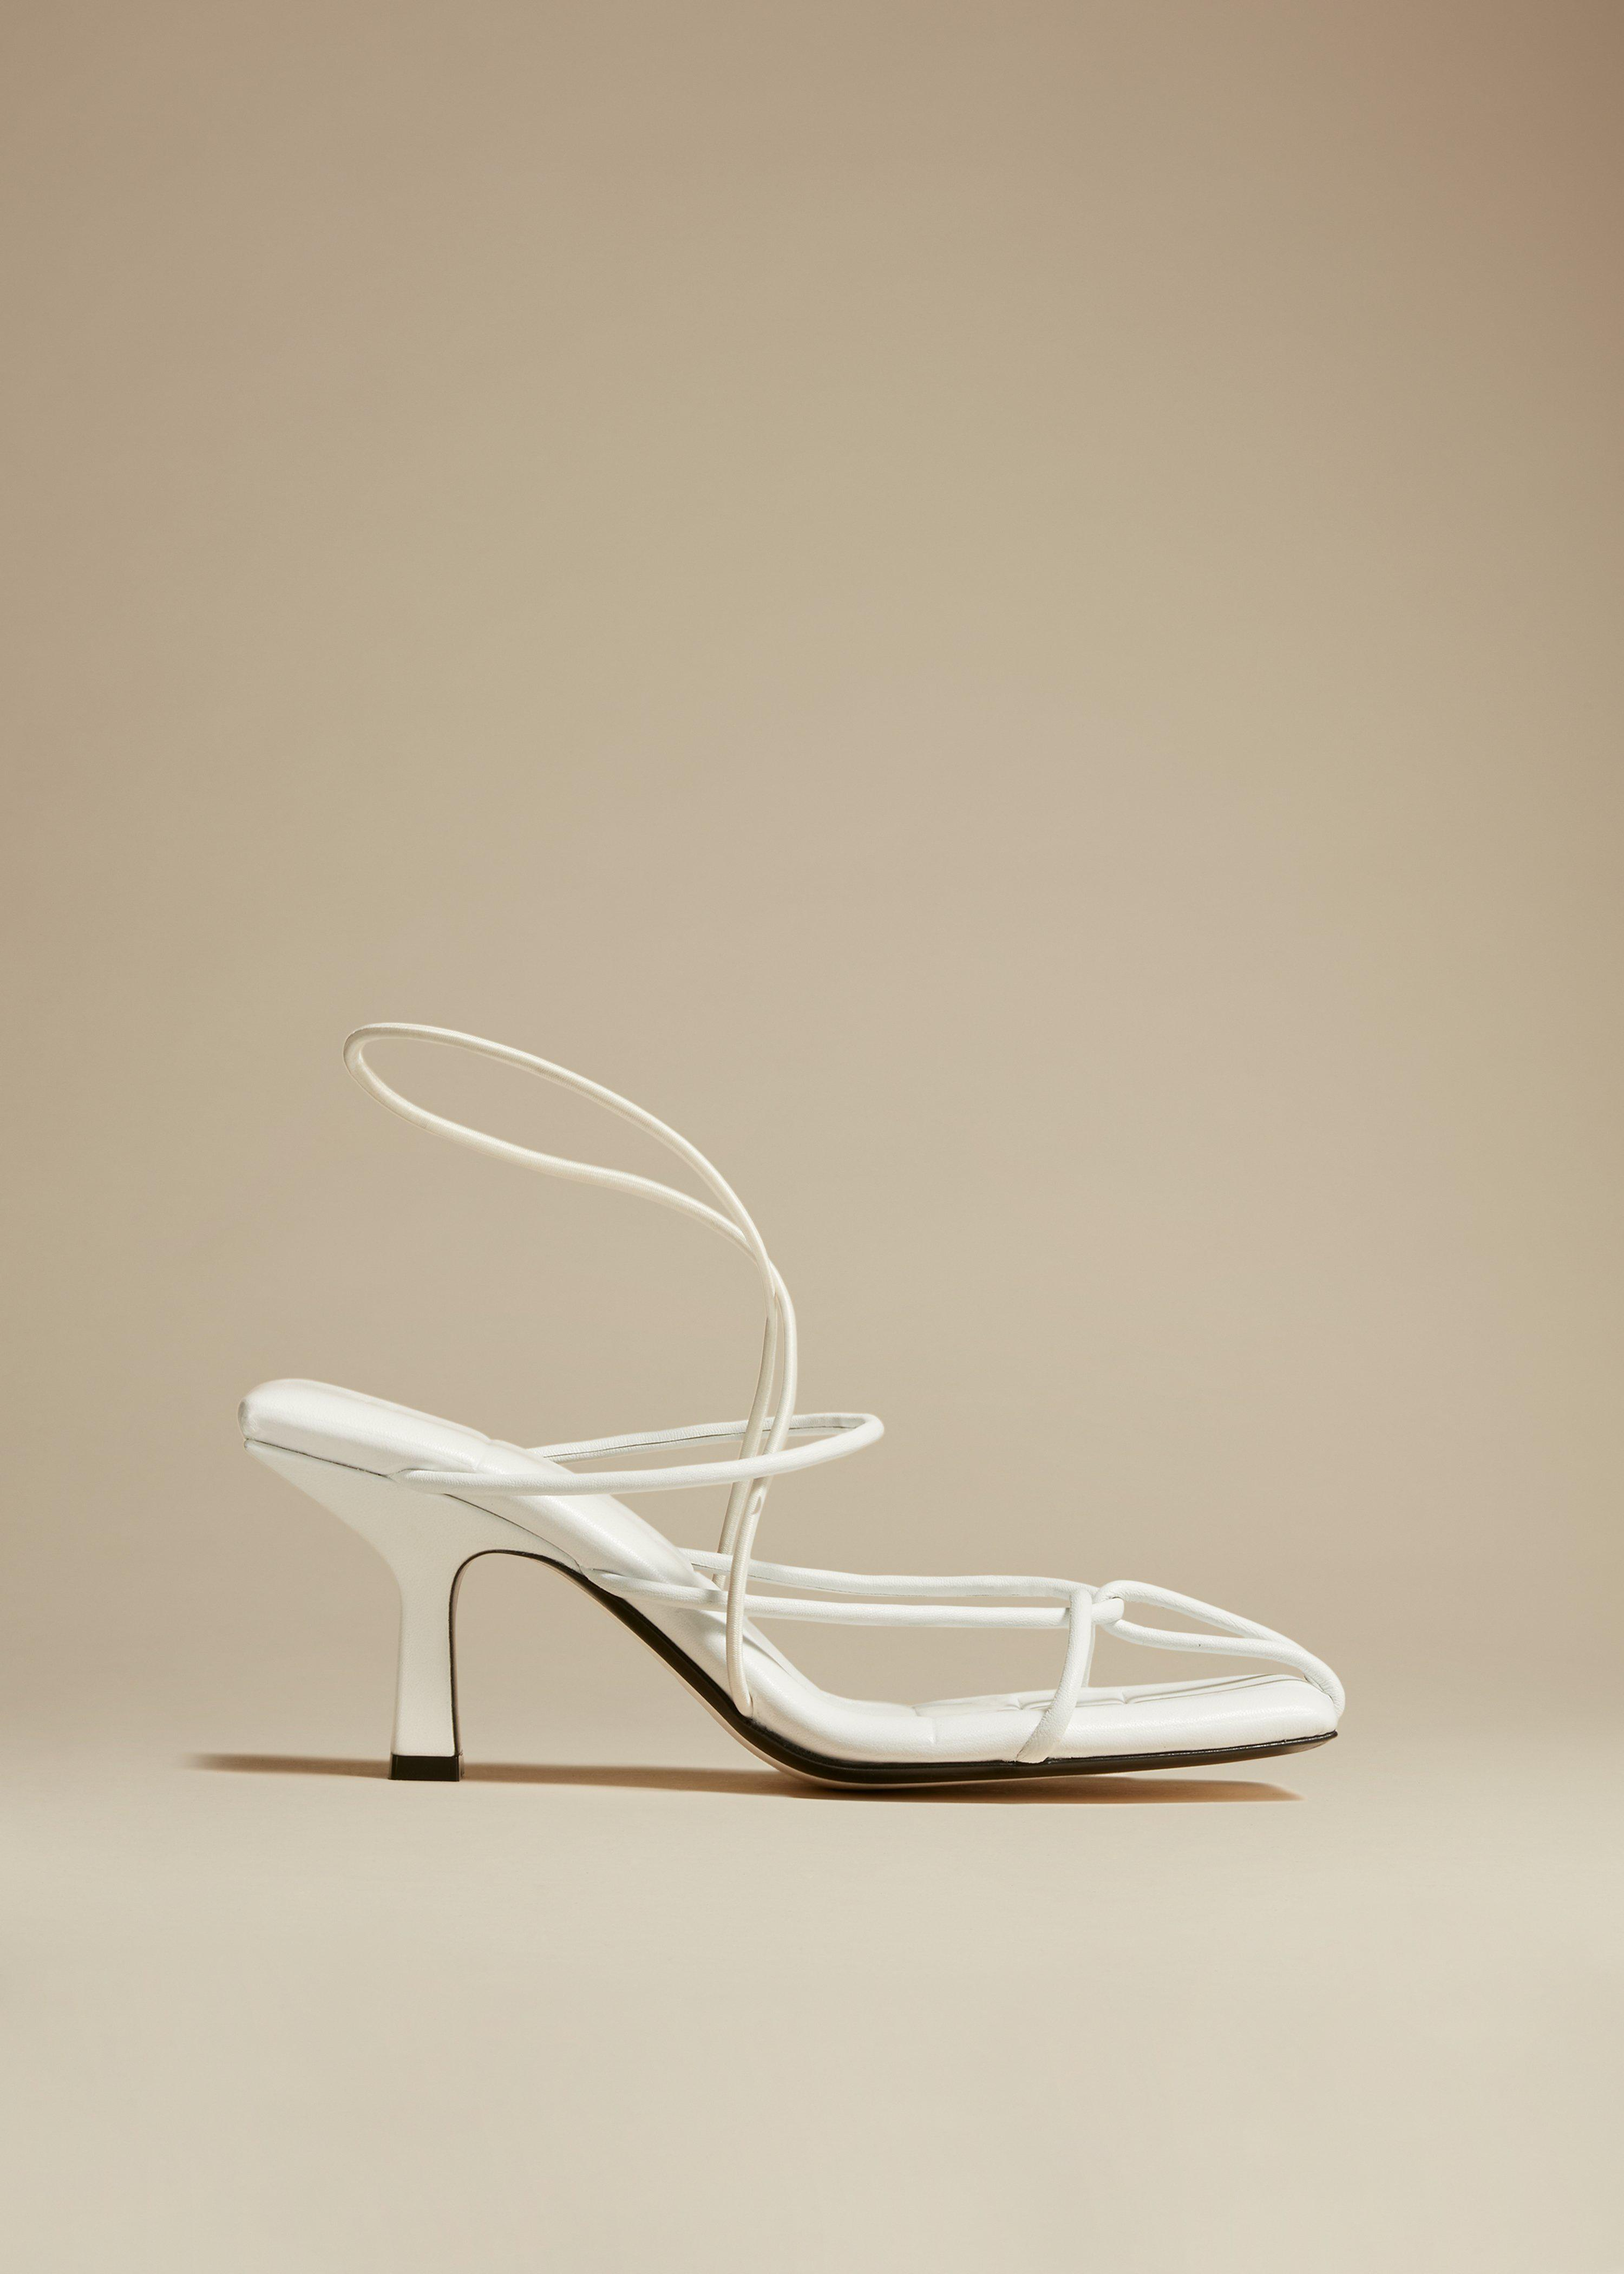 The Monza Heel in White Leather